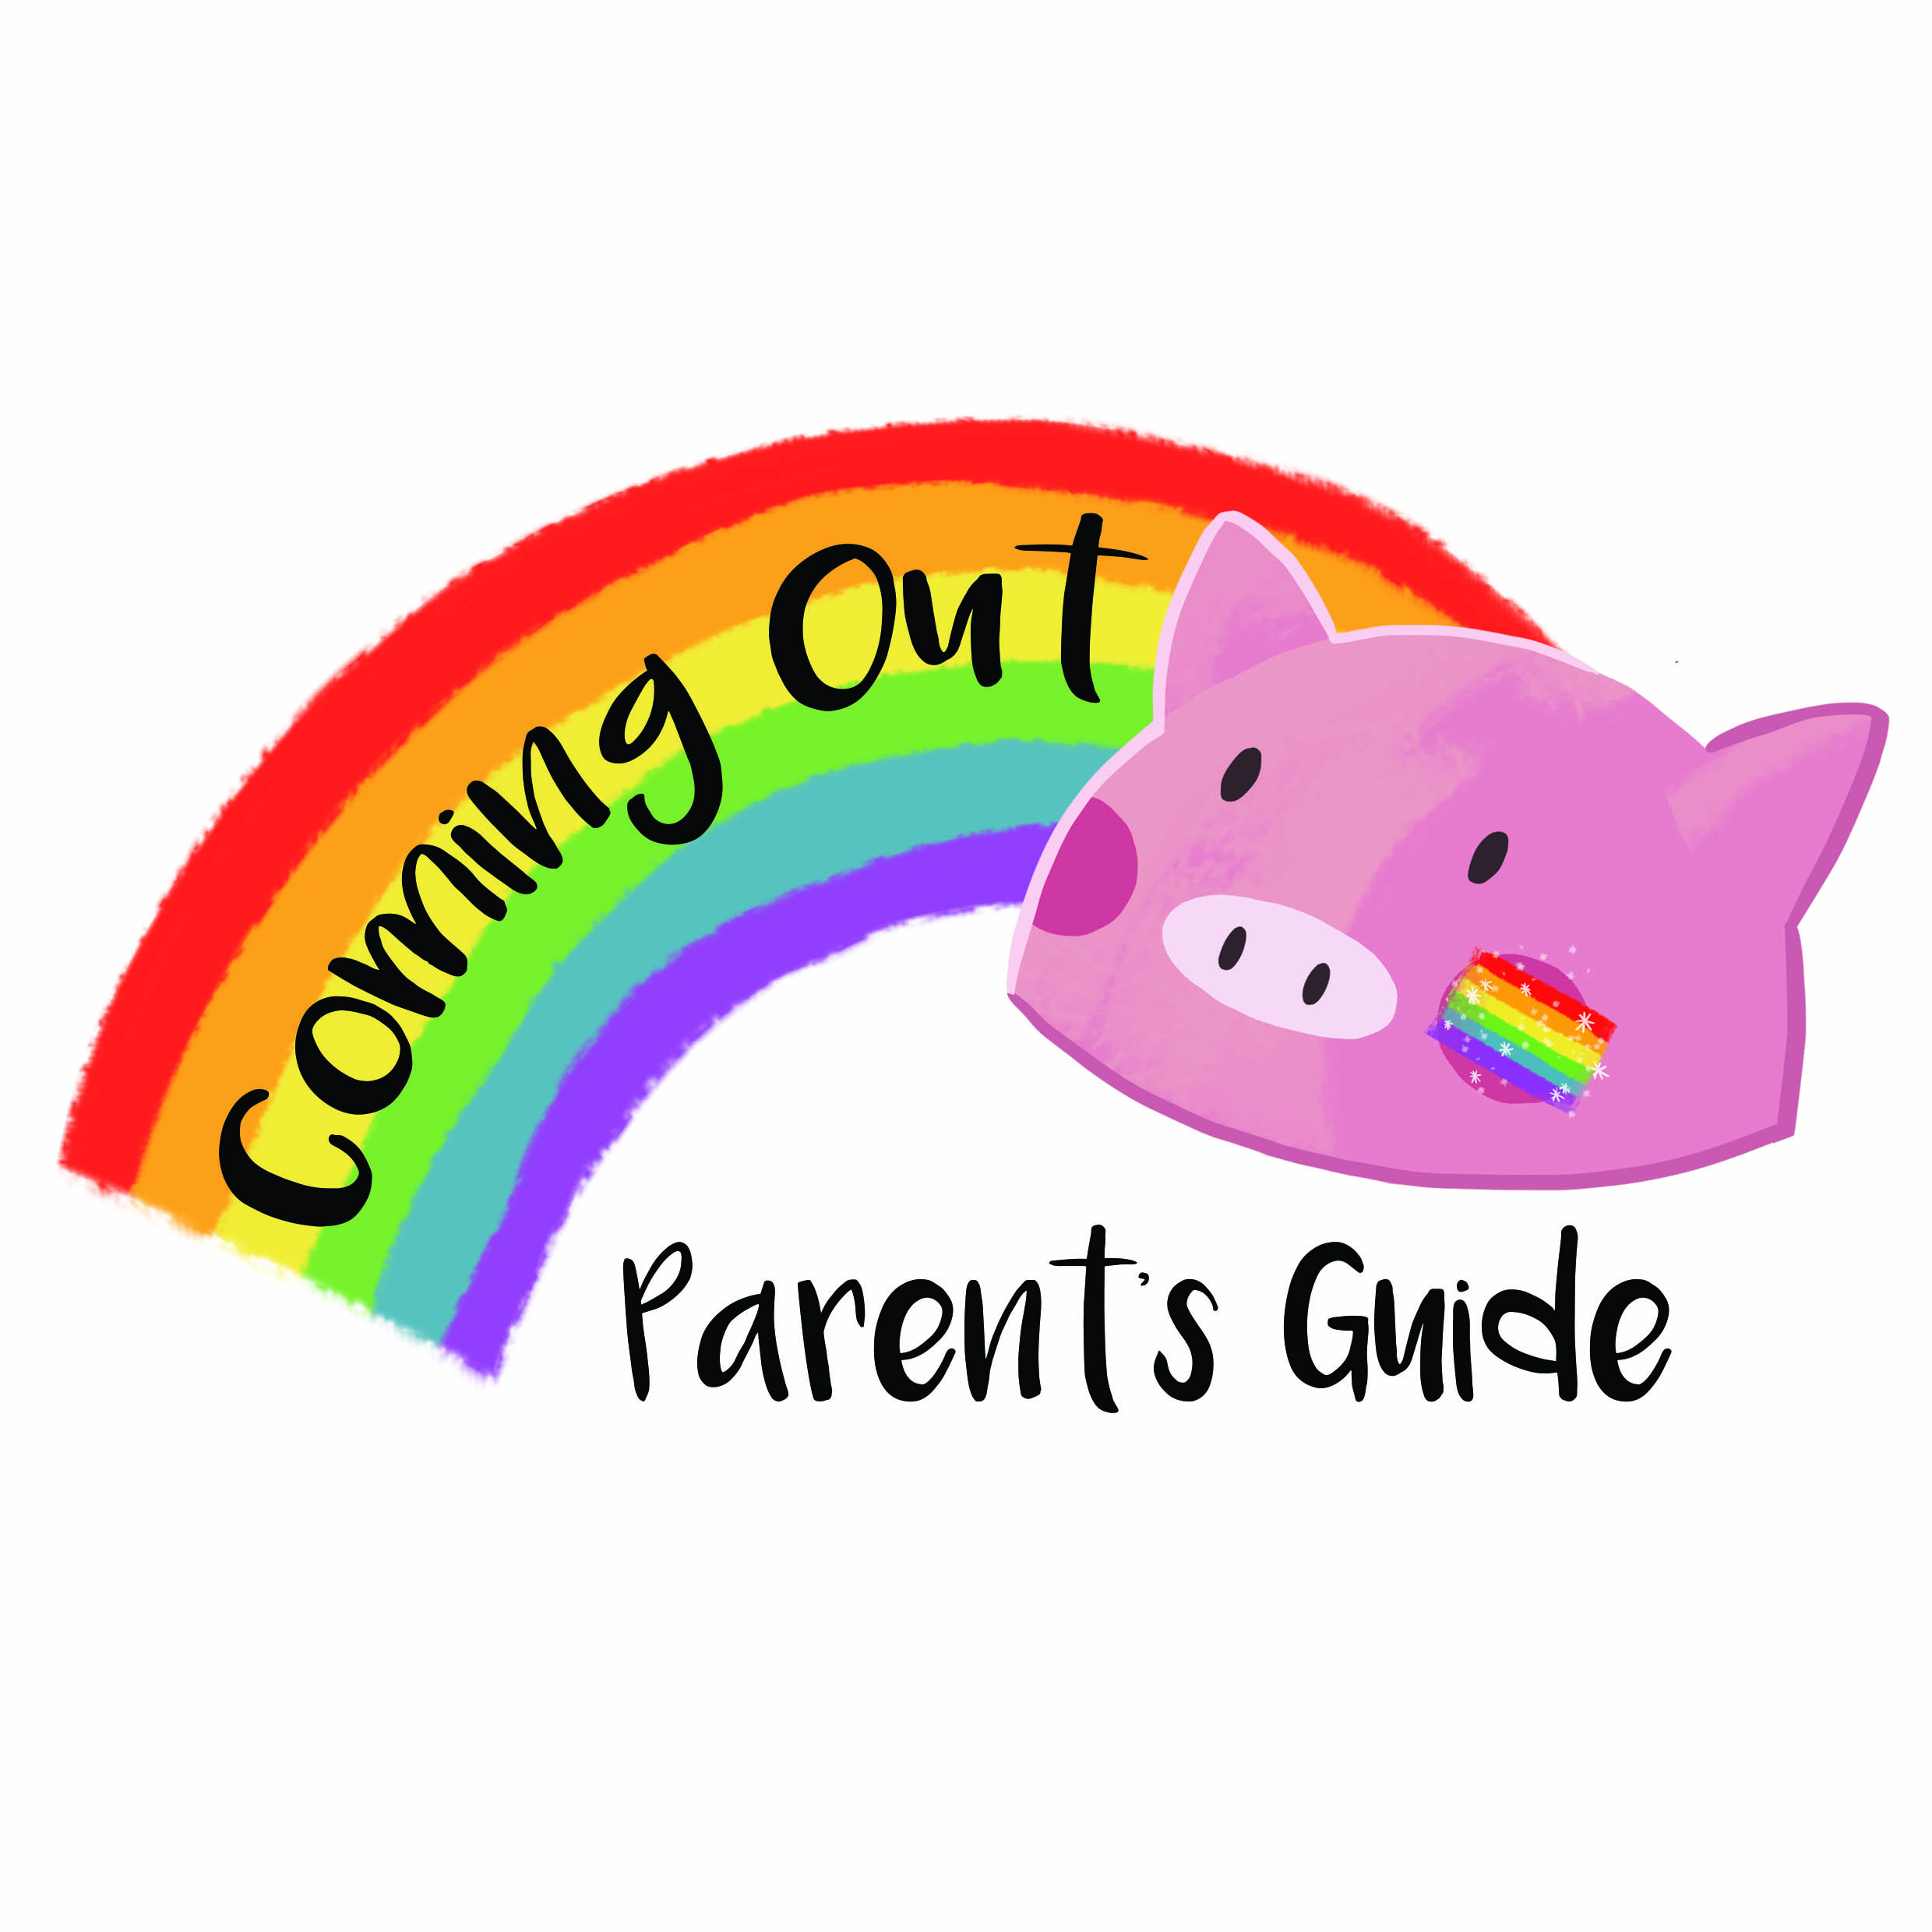 coming out logo.jpg